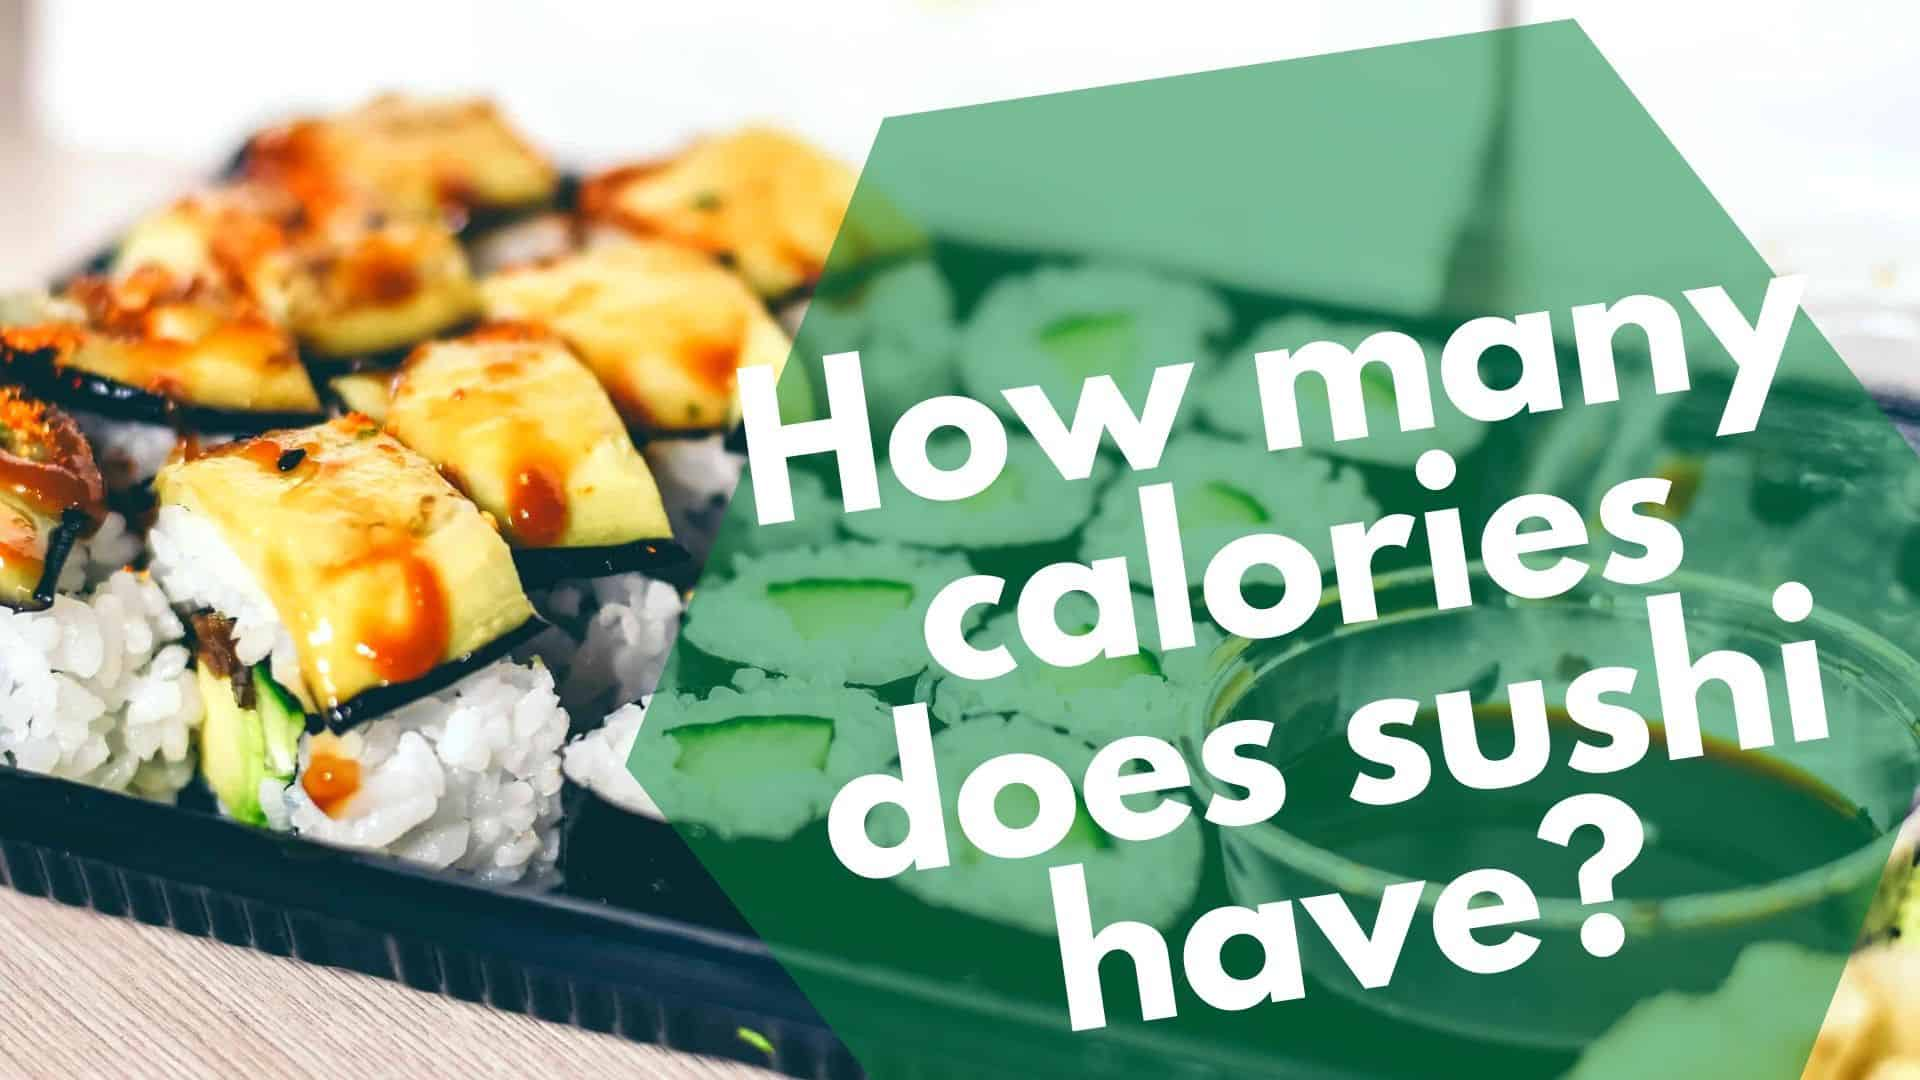 Sushi Calories: Oh my! You should avoid some of these rolls